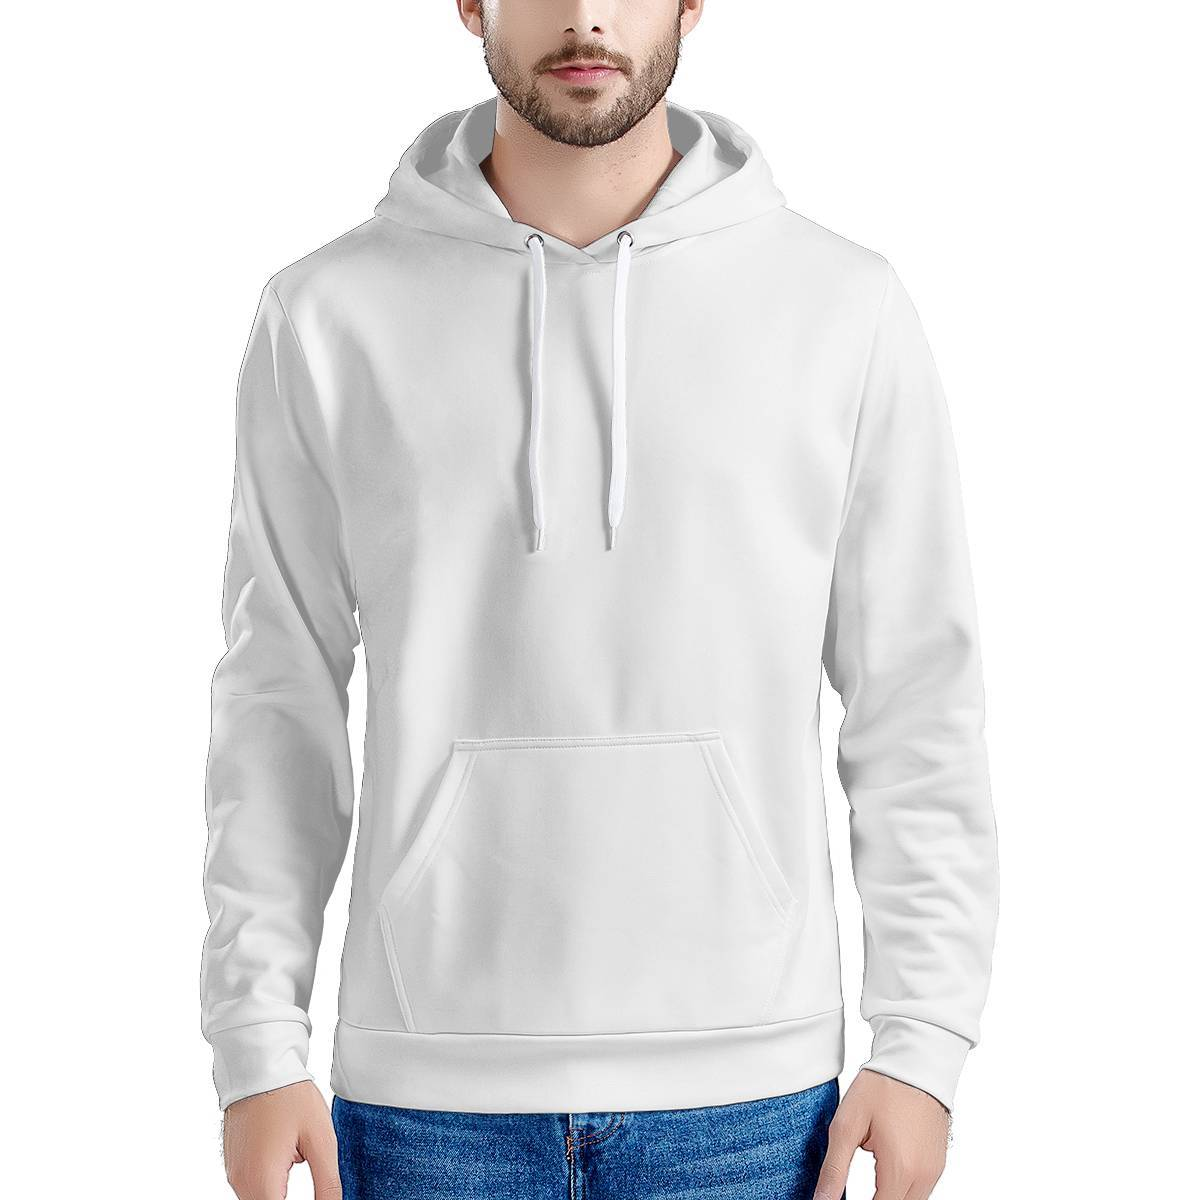 All Over Print Sublimated - Men's All Over Print Hoodie